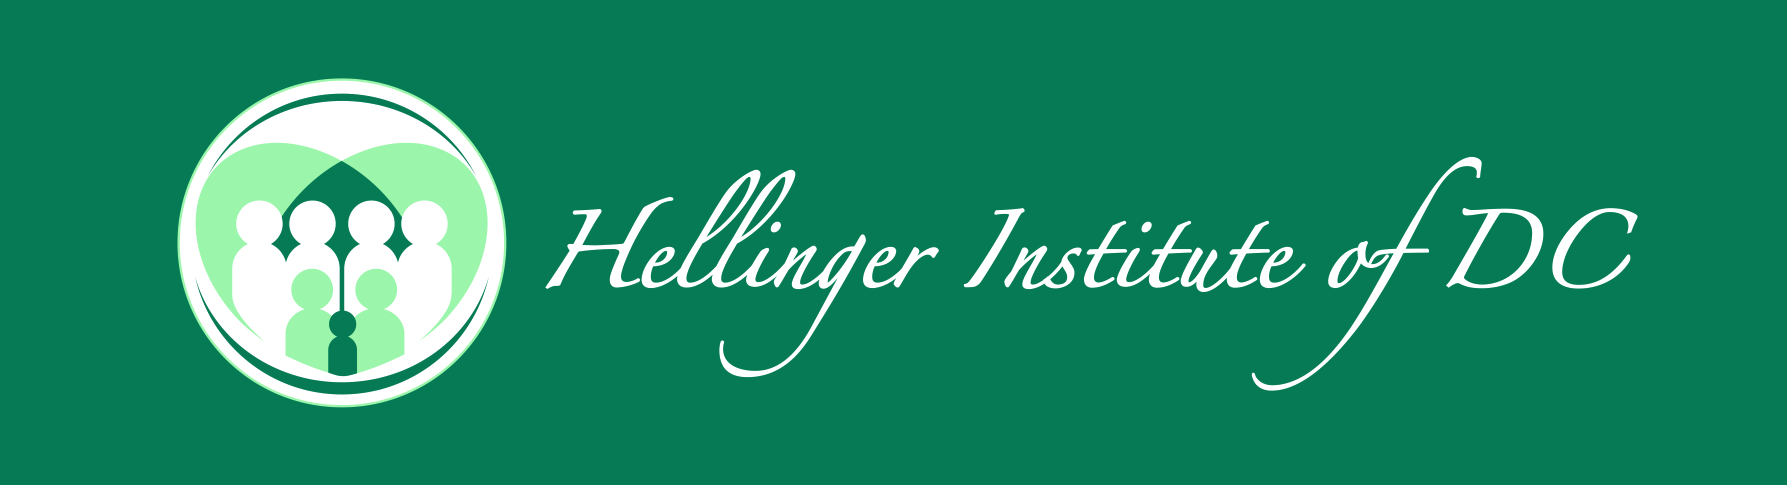 hellinger logo dark background